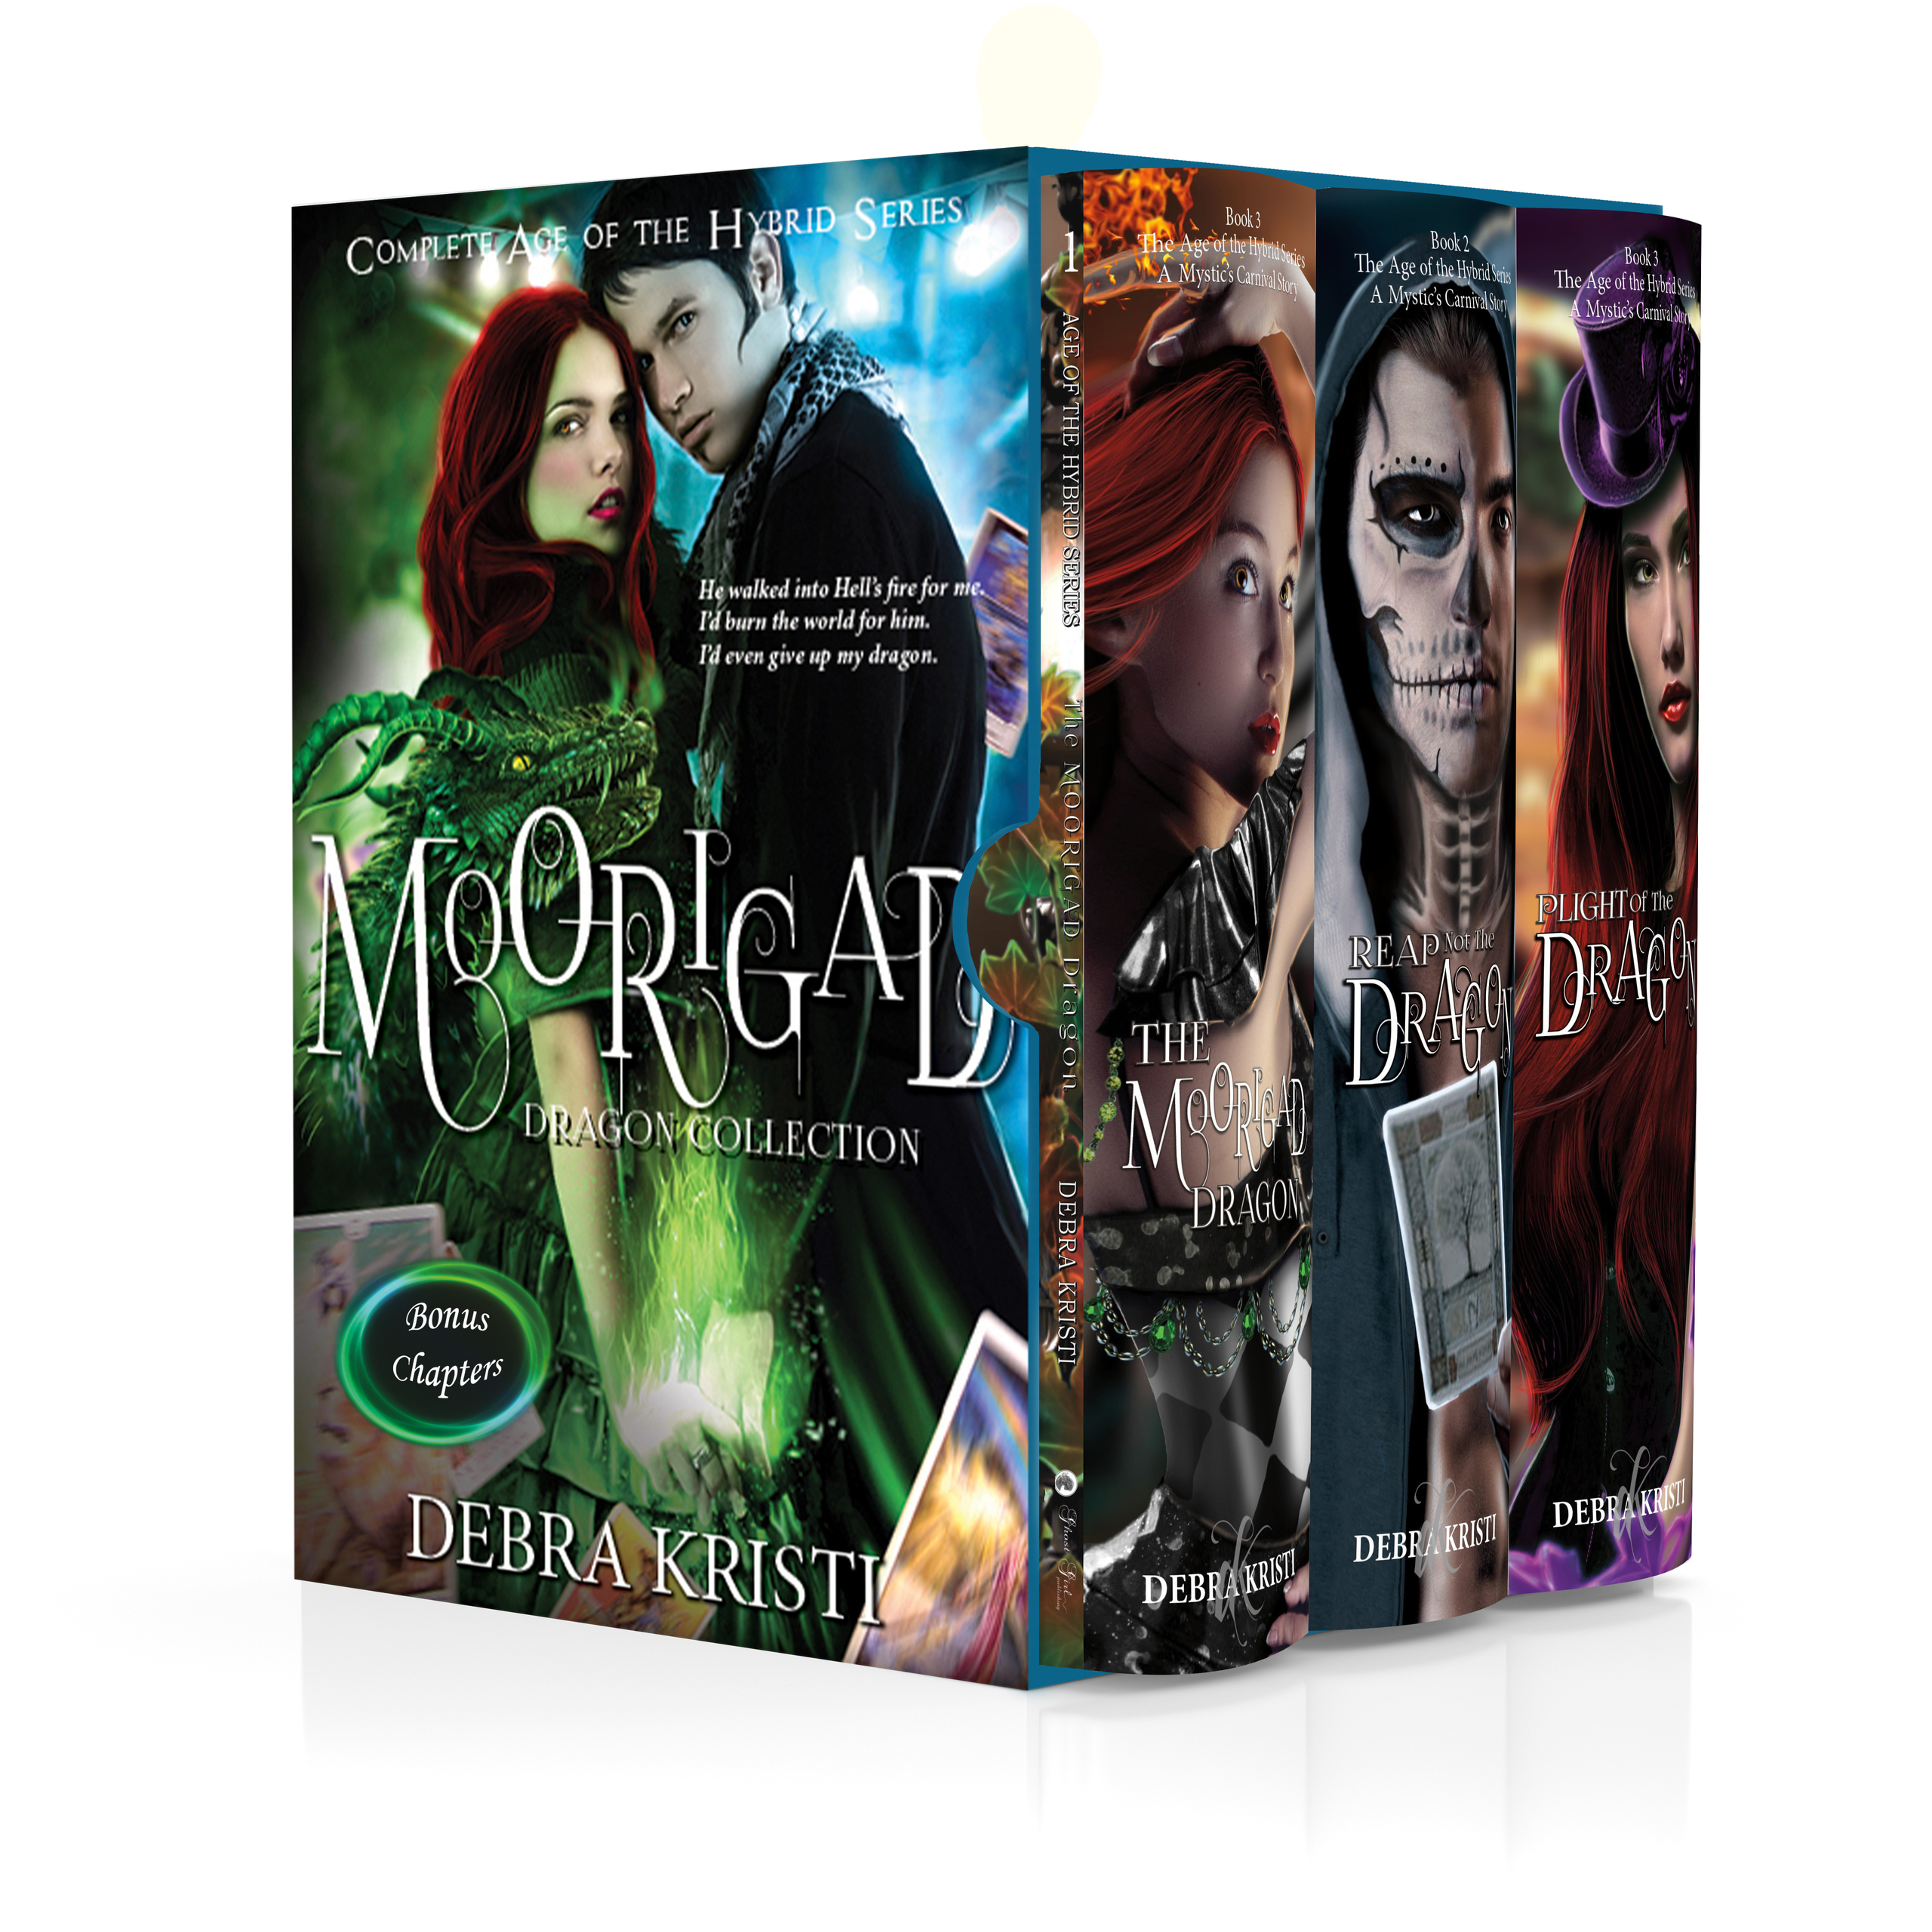 Moorigad: The Complete Age of the Hybrid Series eBook in Cover Reveal for Moorigad: The Big Book by Debra Kristi author